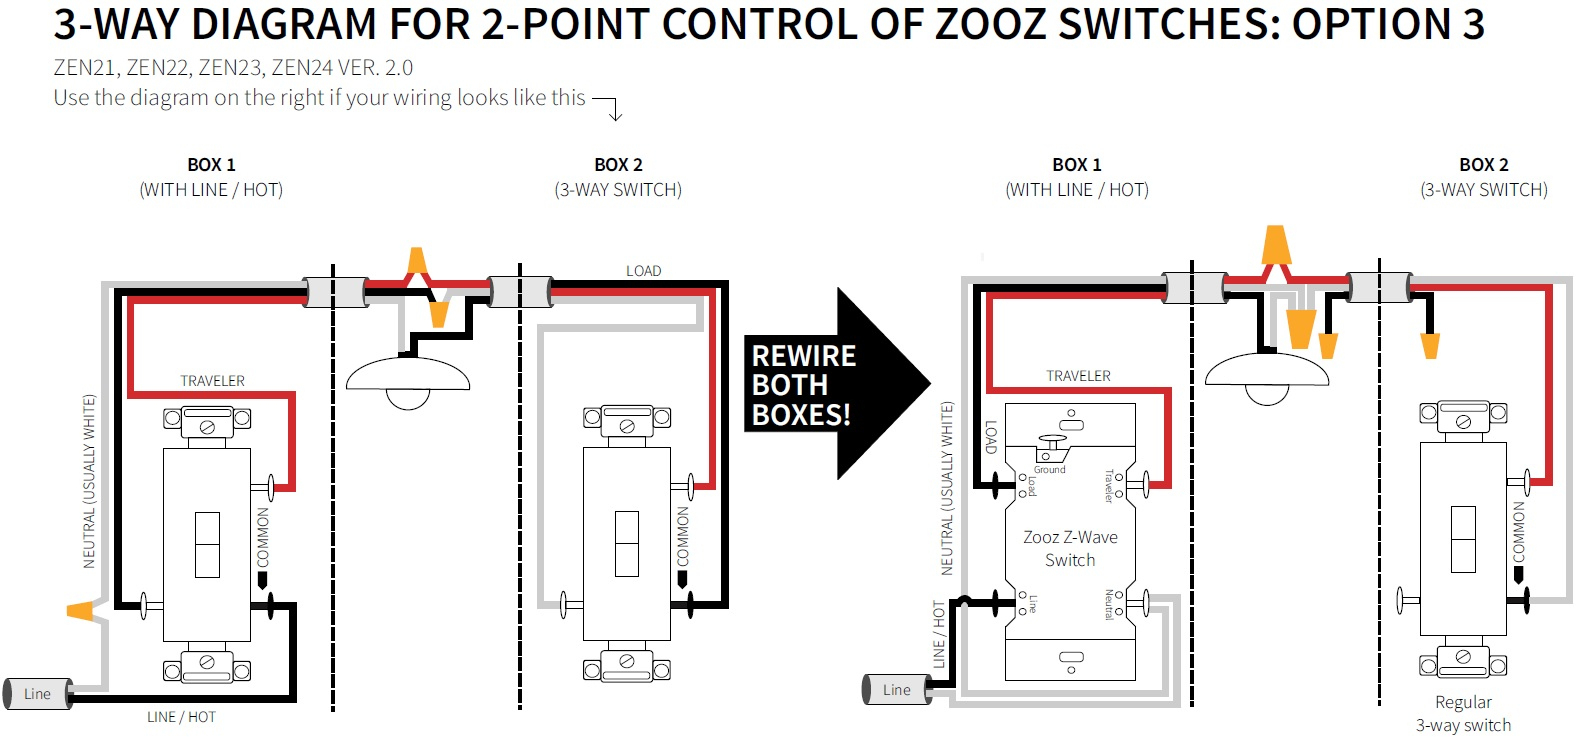 How To Wire Your Zooz Switch In A 3-Way Configuration - Zooz - 3Way Switch Wiring Diagram